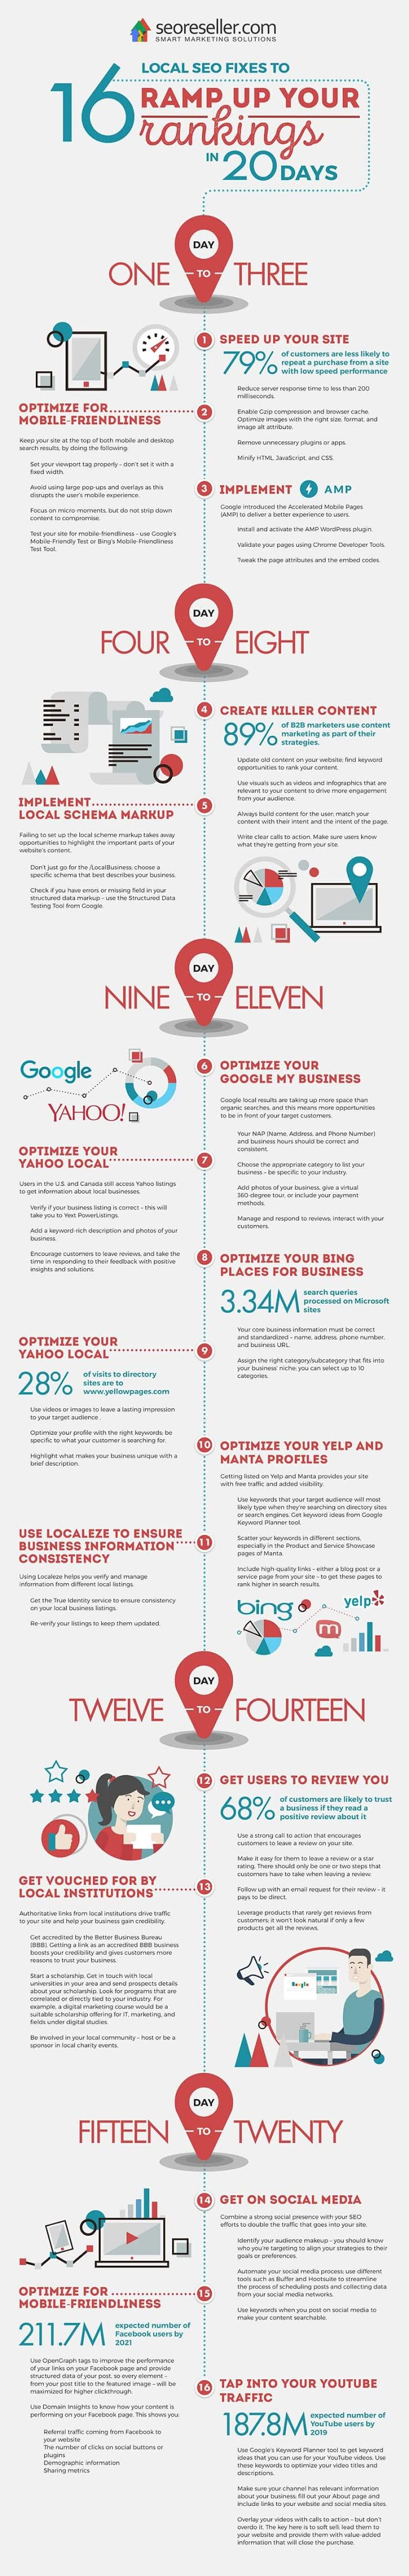 16 Local SEO Fixes To Ramp Up Your Rankings in 20 Days #infographic